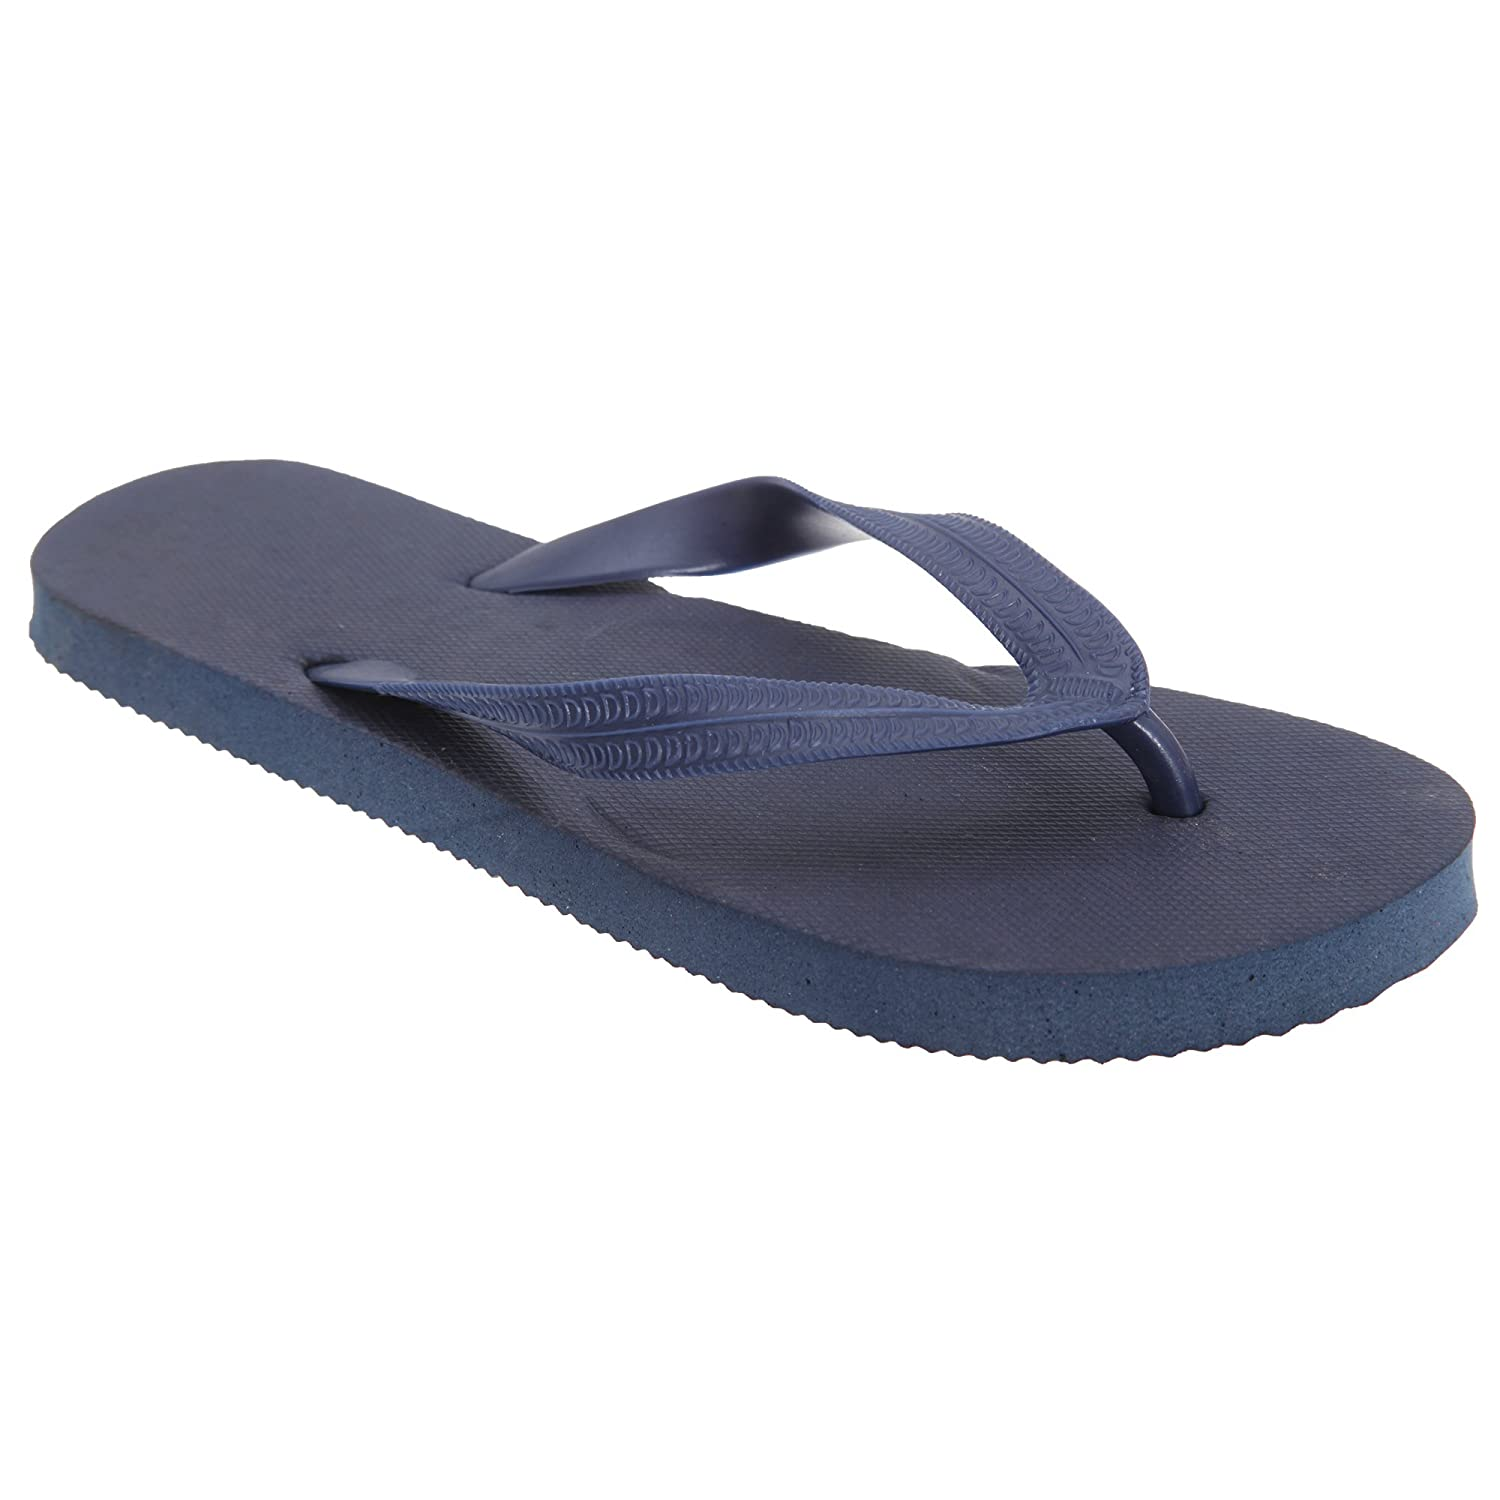 Floso Childrens/Kids Boys Solid Colour Flip Flops